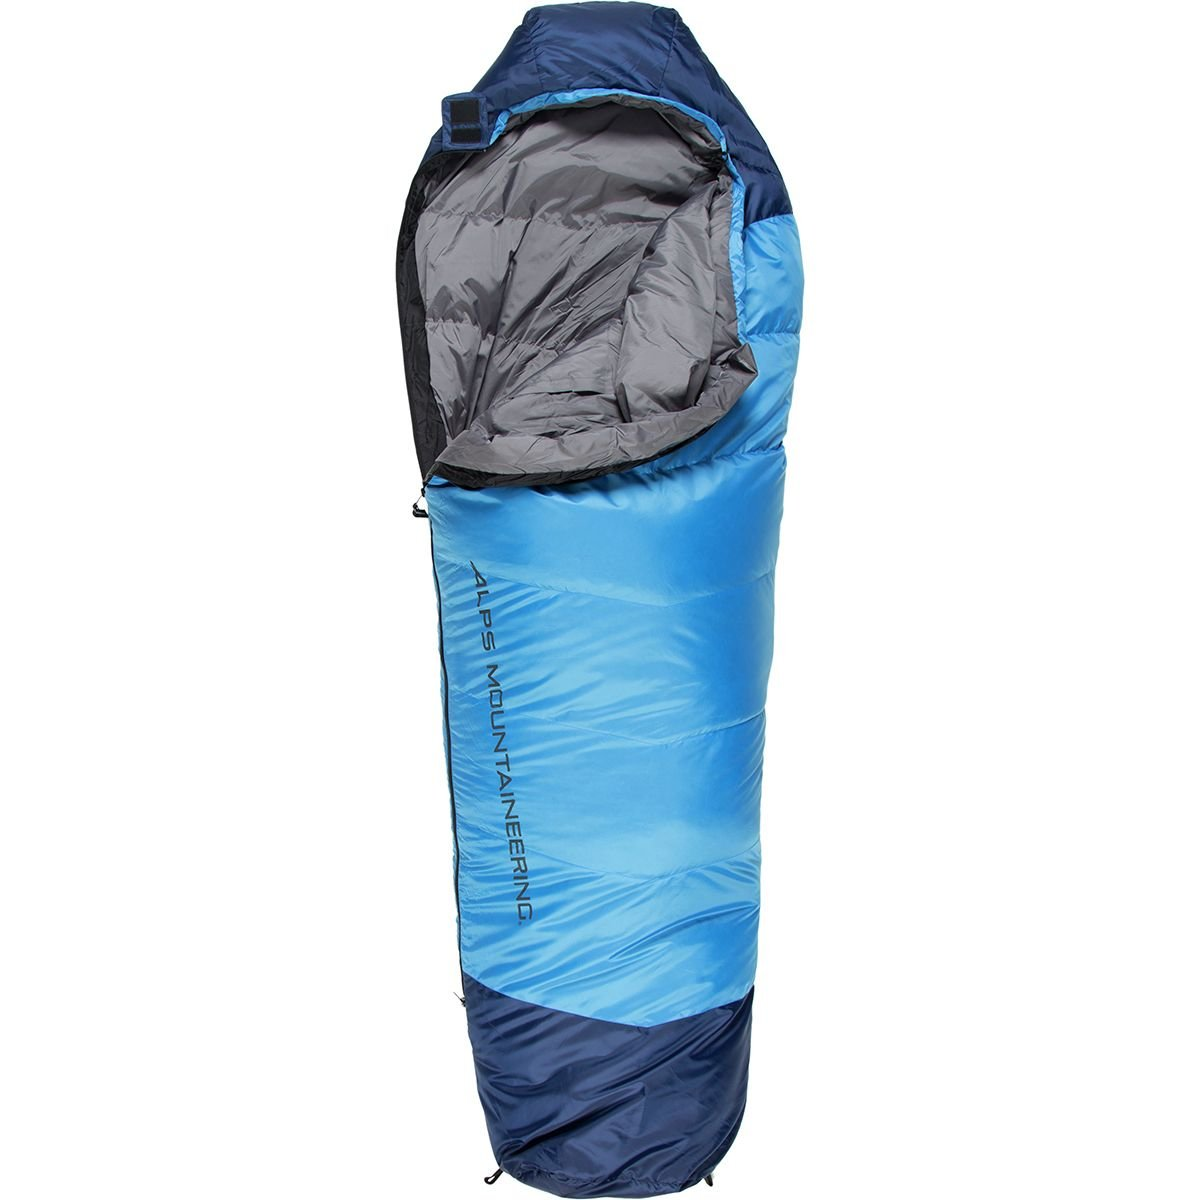 An image of Alps Mountaineering Quest 20 Sleeping Bag